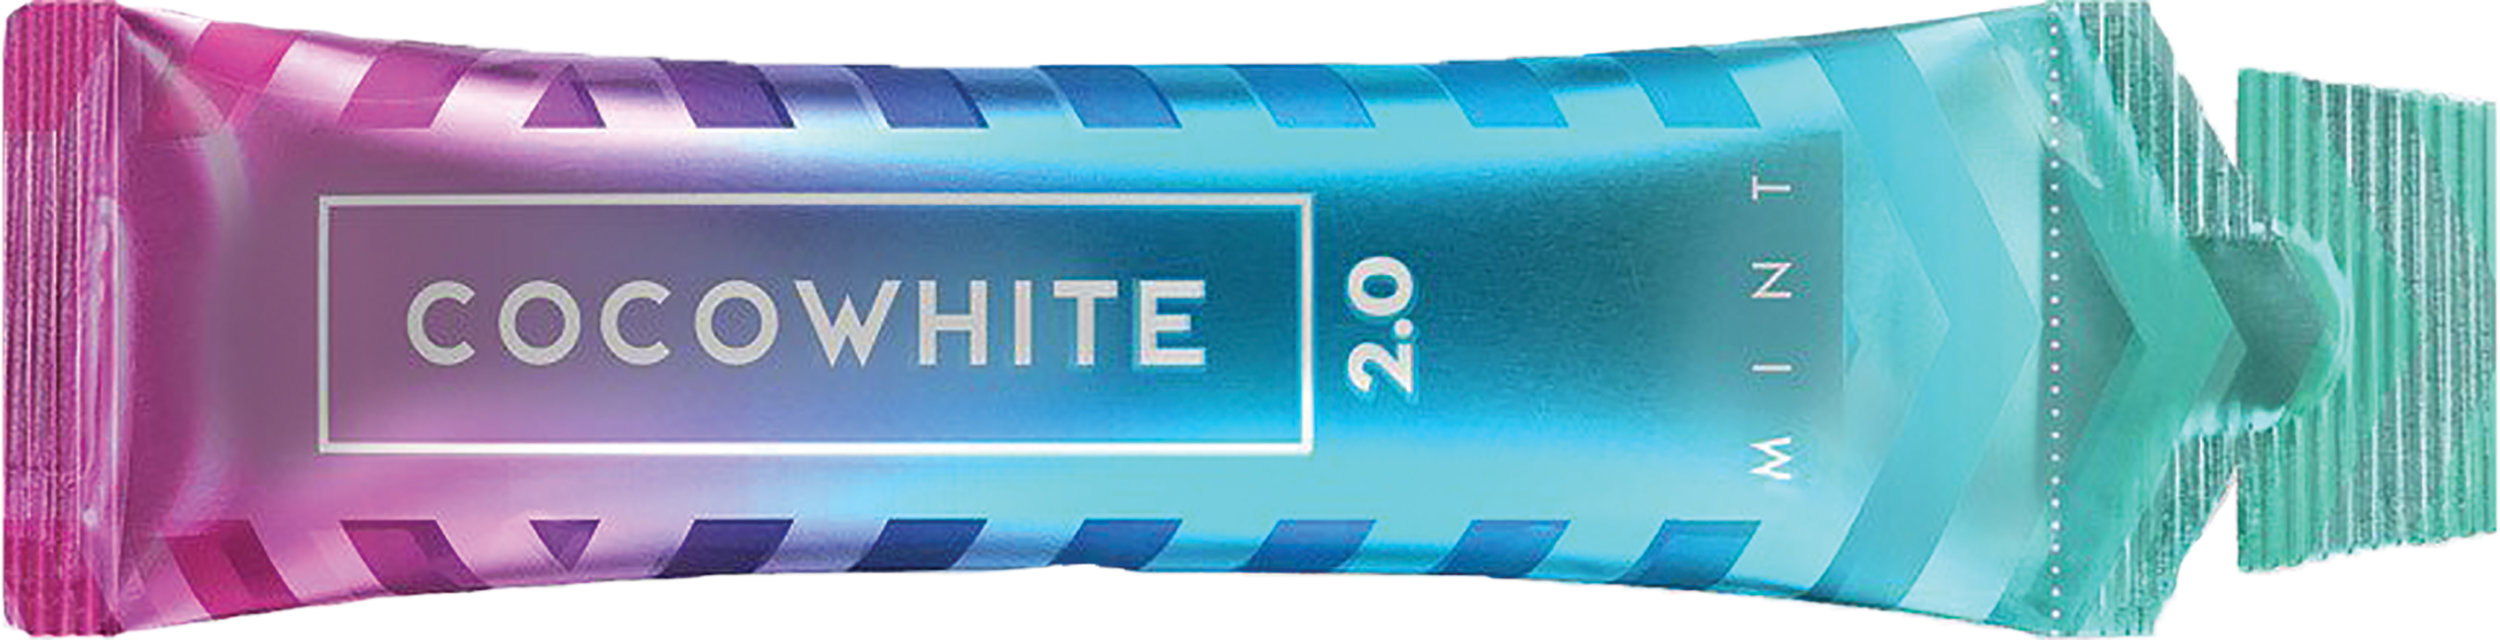 """Cocowhite 2.0 // Coconut oil, sodium bicarbonate,menthol for that """"just brushed clean feeling."""""""